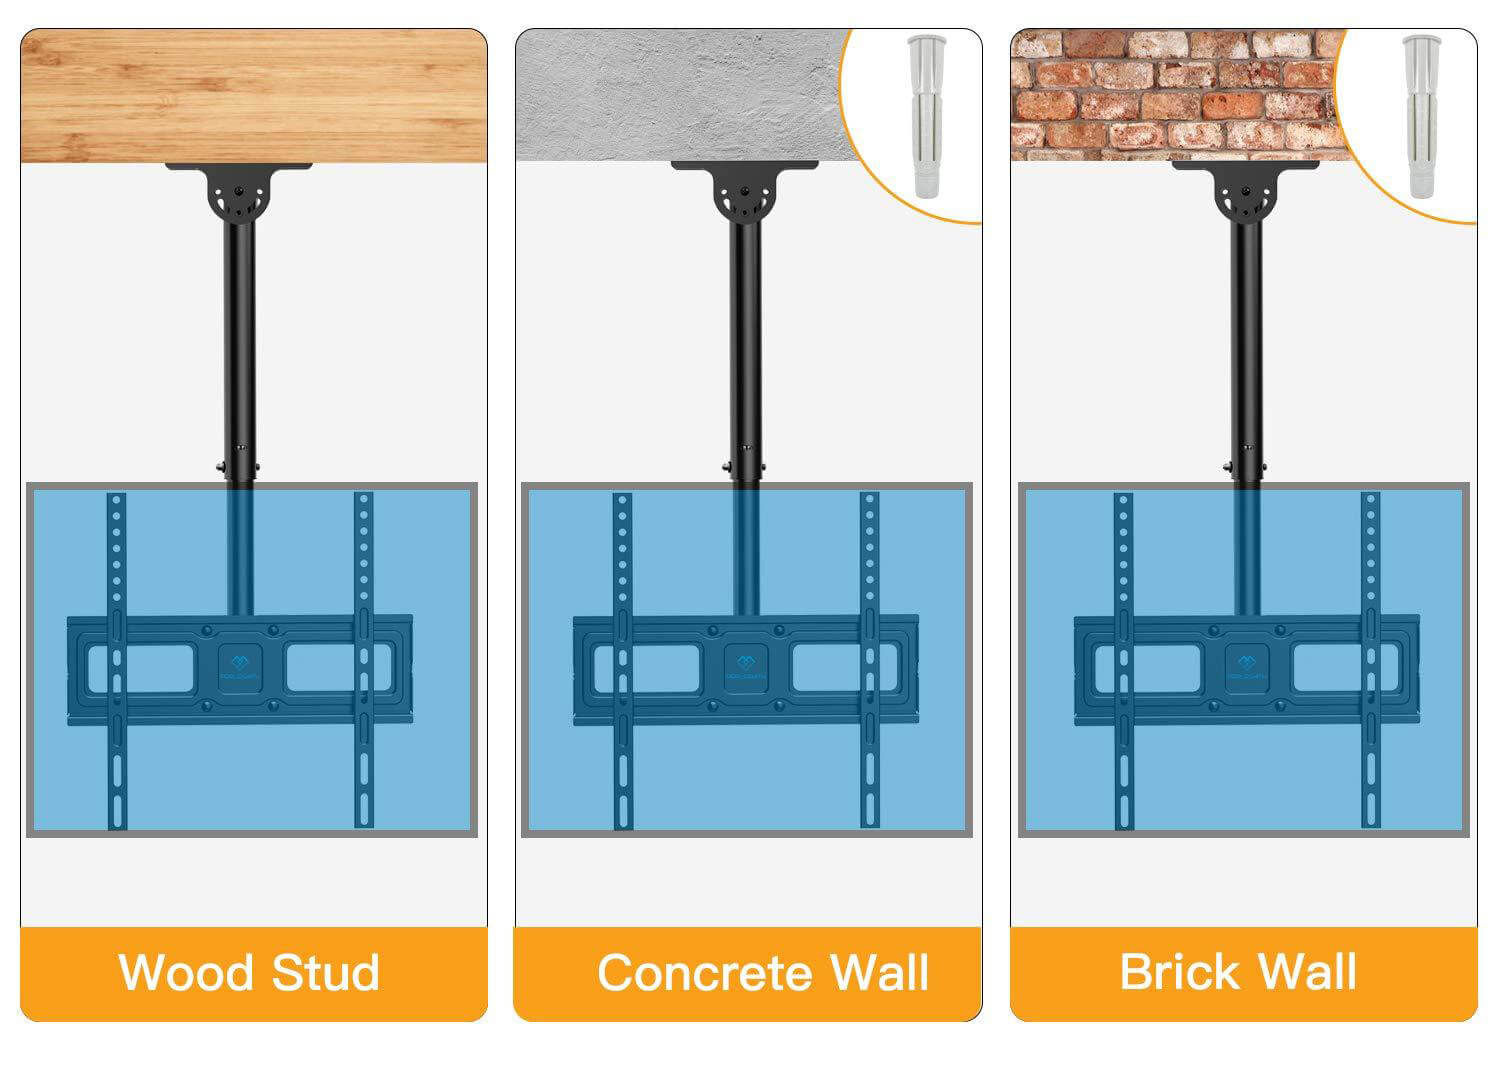 Find out if your wall is compatible with the swivel mount-